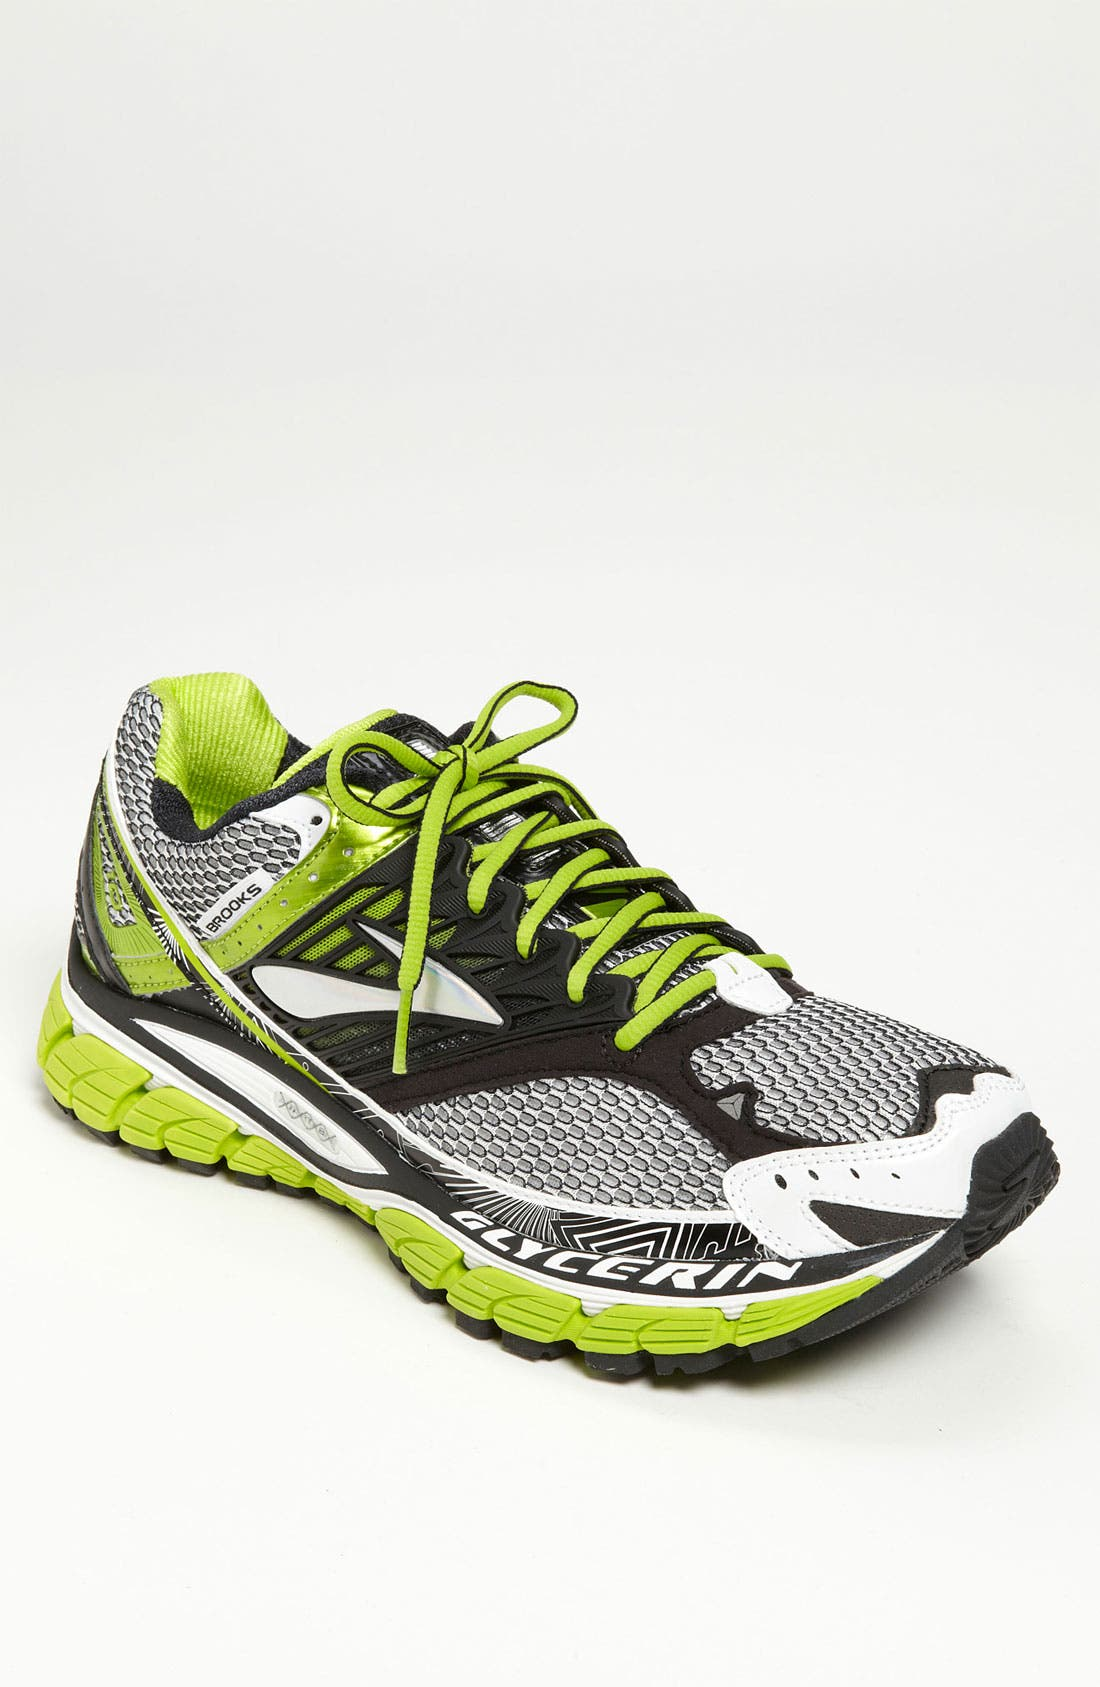 Alternate Image 1 Selected - Brooks 'Glycerin 10' Running Shoe (Men)